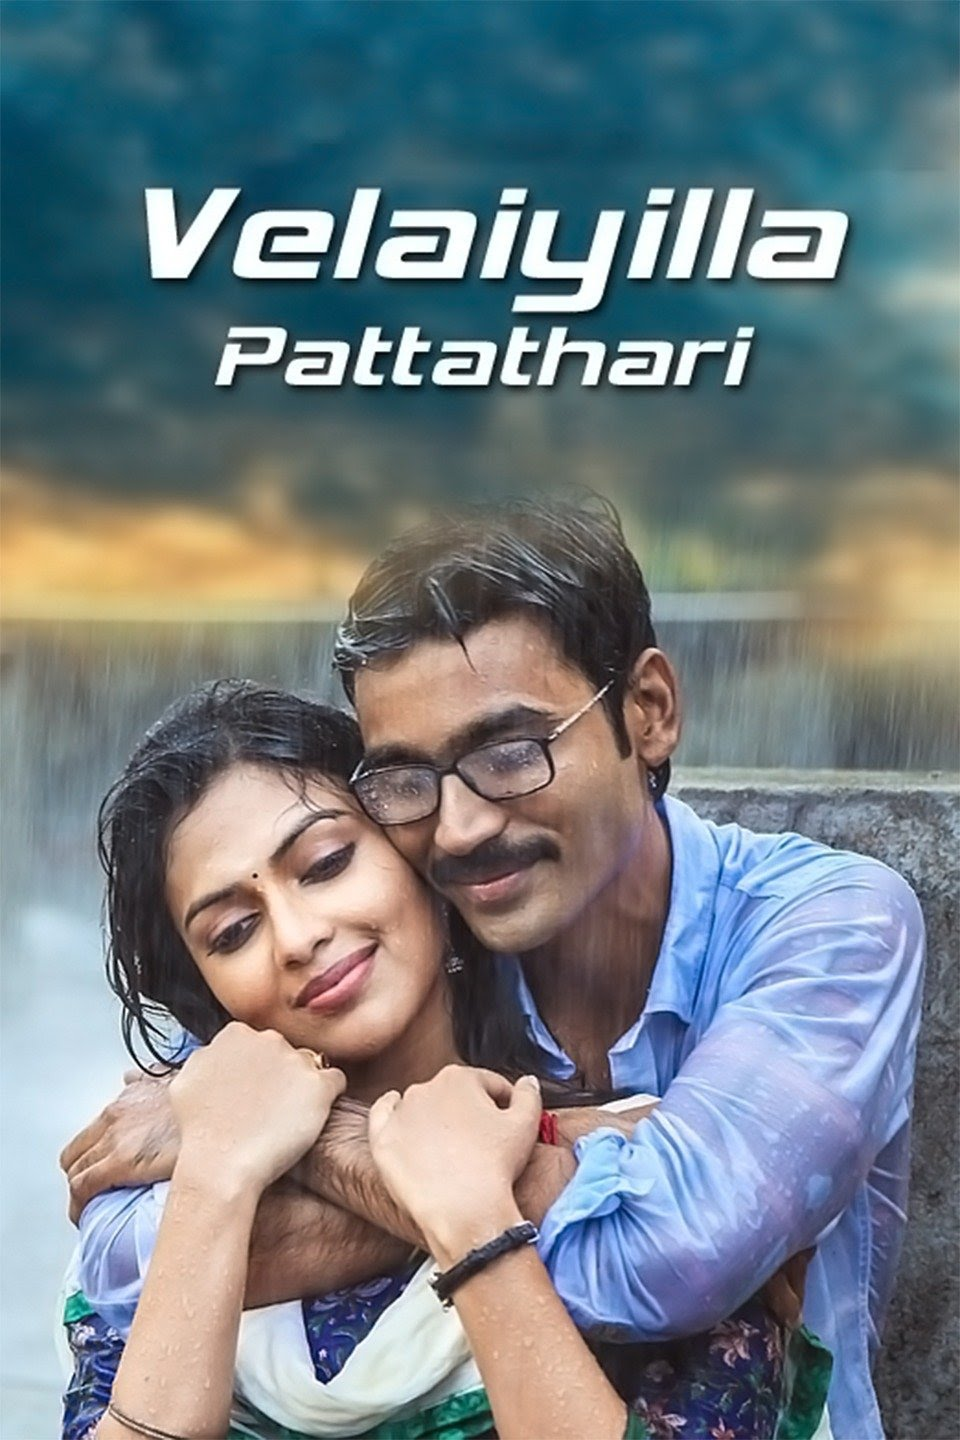 Velaiyilla Pattathari (VIP) 2014 Hindi Dual Audio 470MB UNCUT HDRip Download